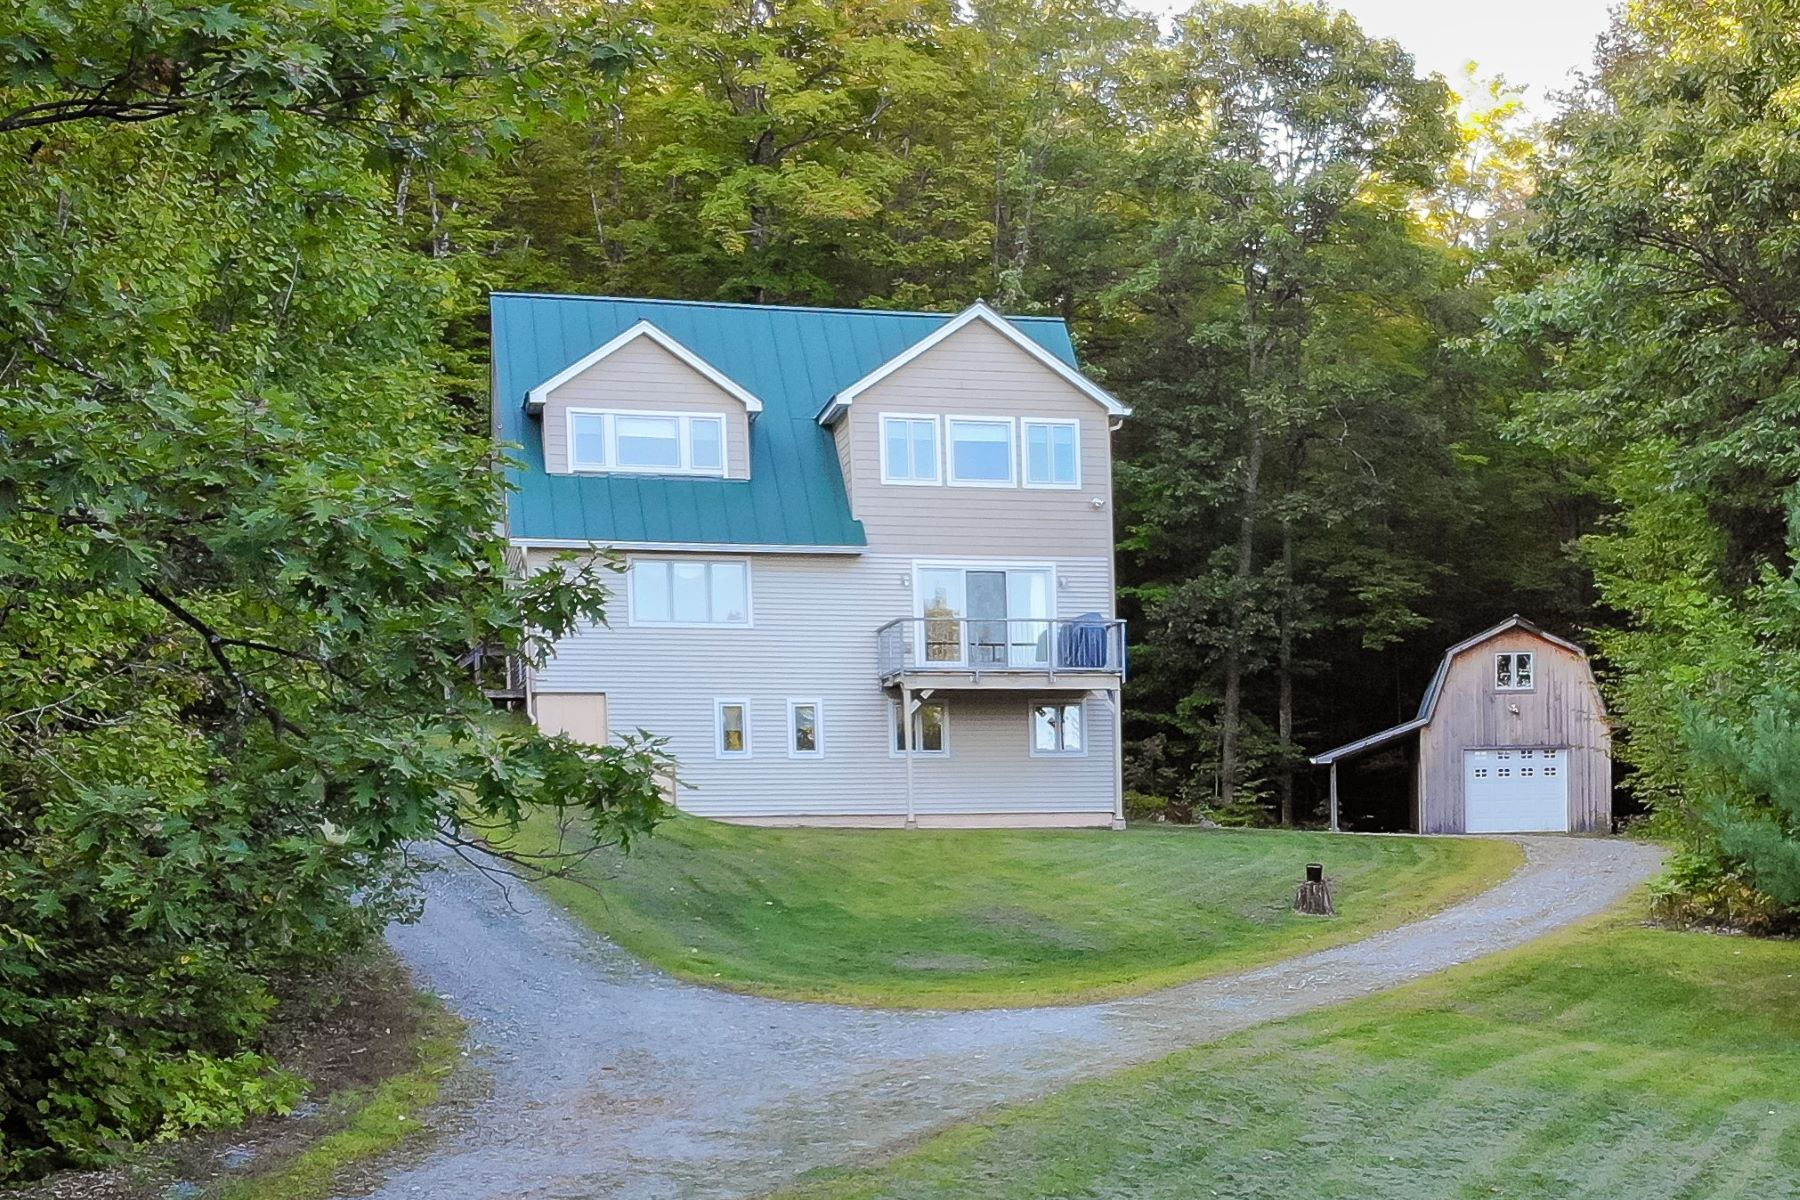 Single Family Homes for Sale at Two Bedroom Contemporary in Newbury on 11 Acres 882 Fuller Rd Newbury, Vermont 05051 United States